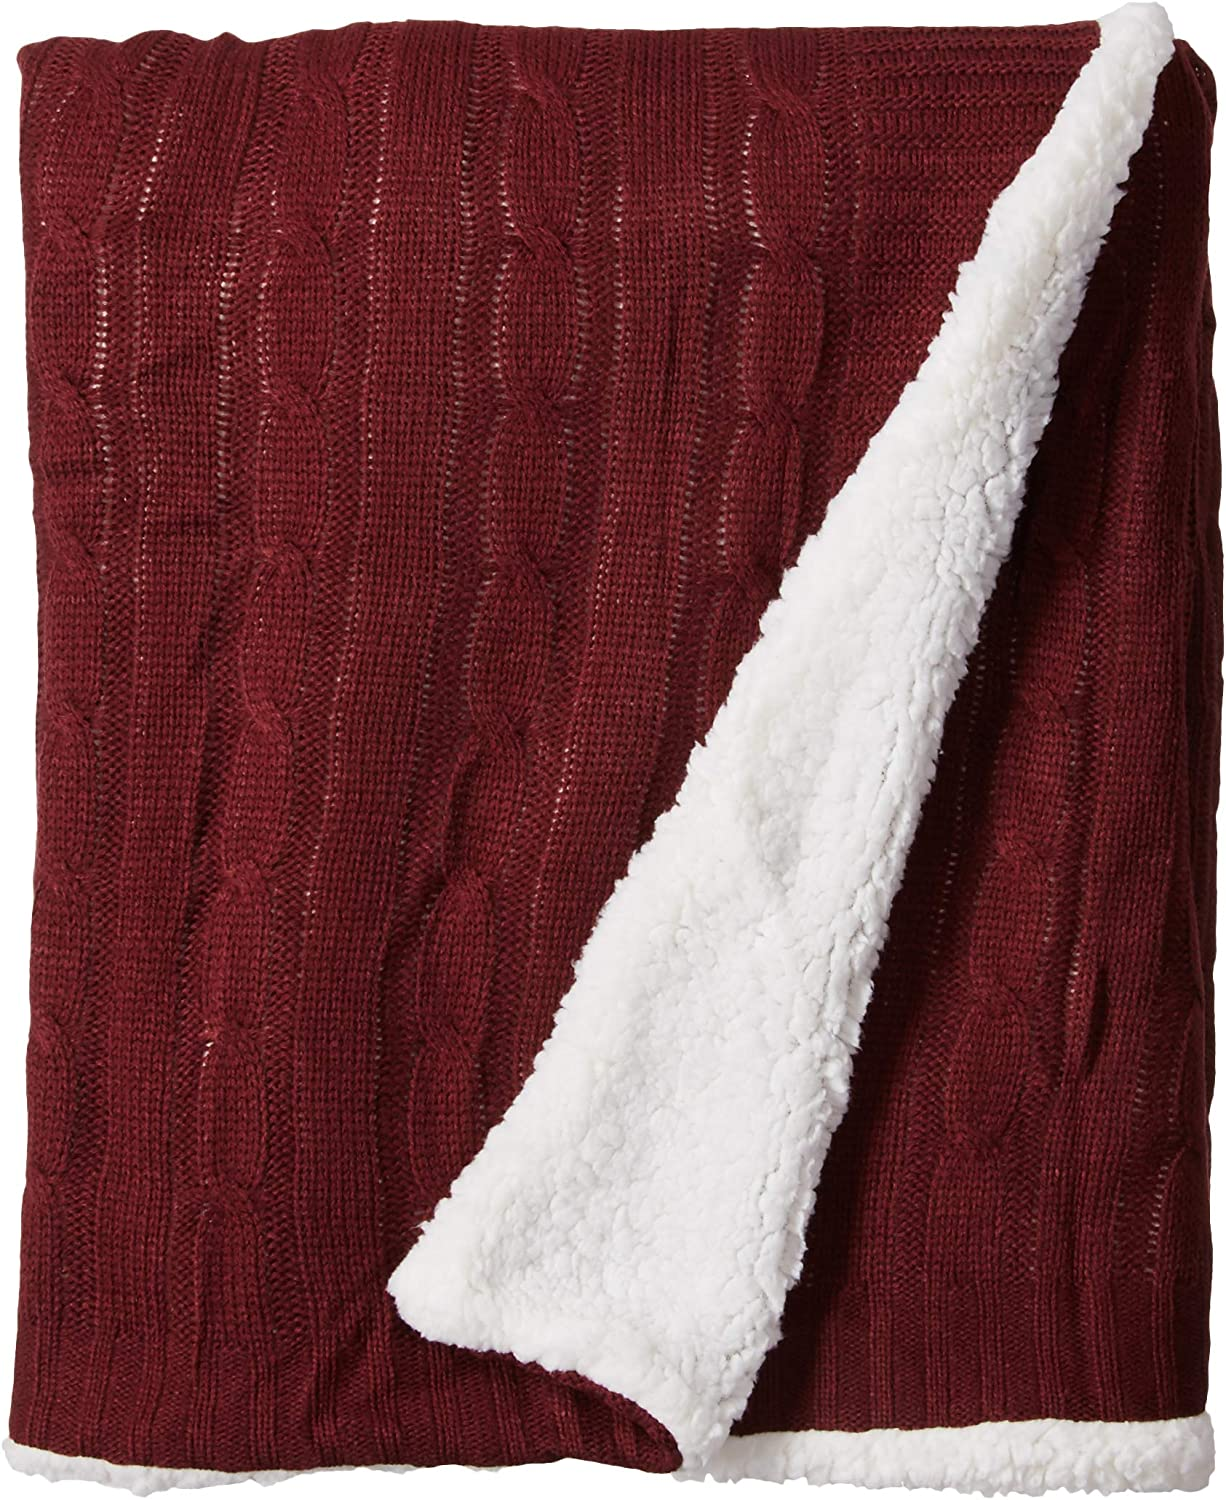 Posh Home Sweater Cable Knit Throw with Ultra Soft Sherpa Lining-Reversible-50x60-Burgundy